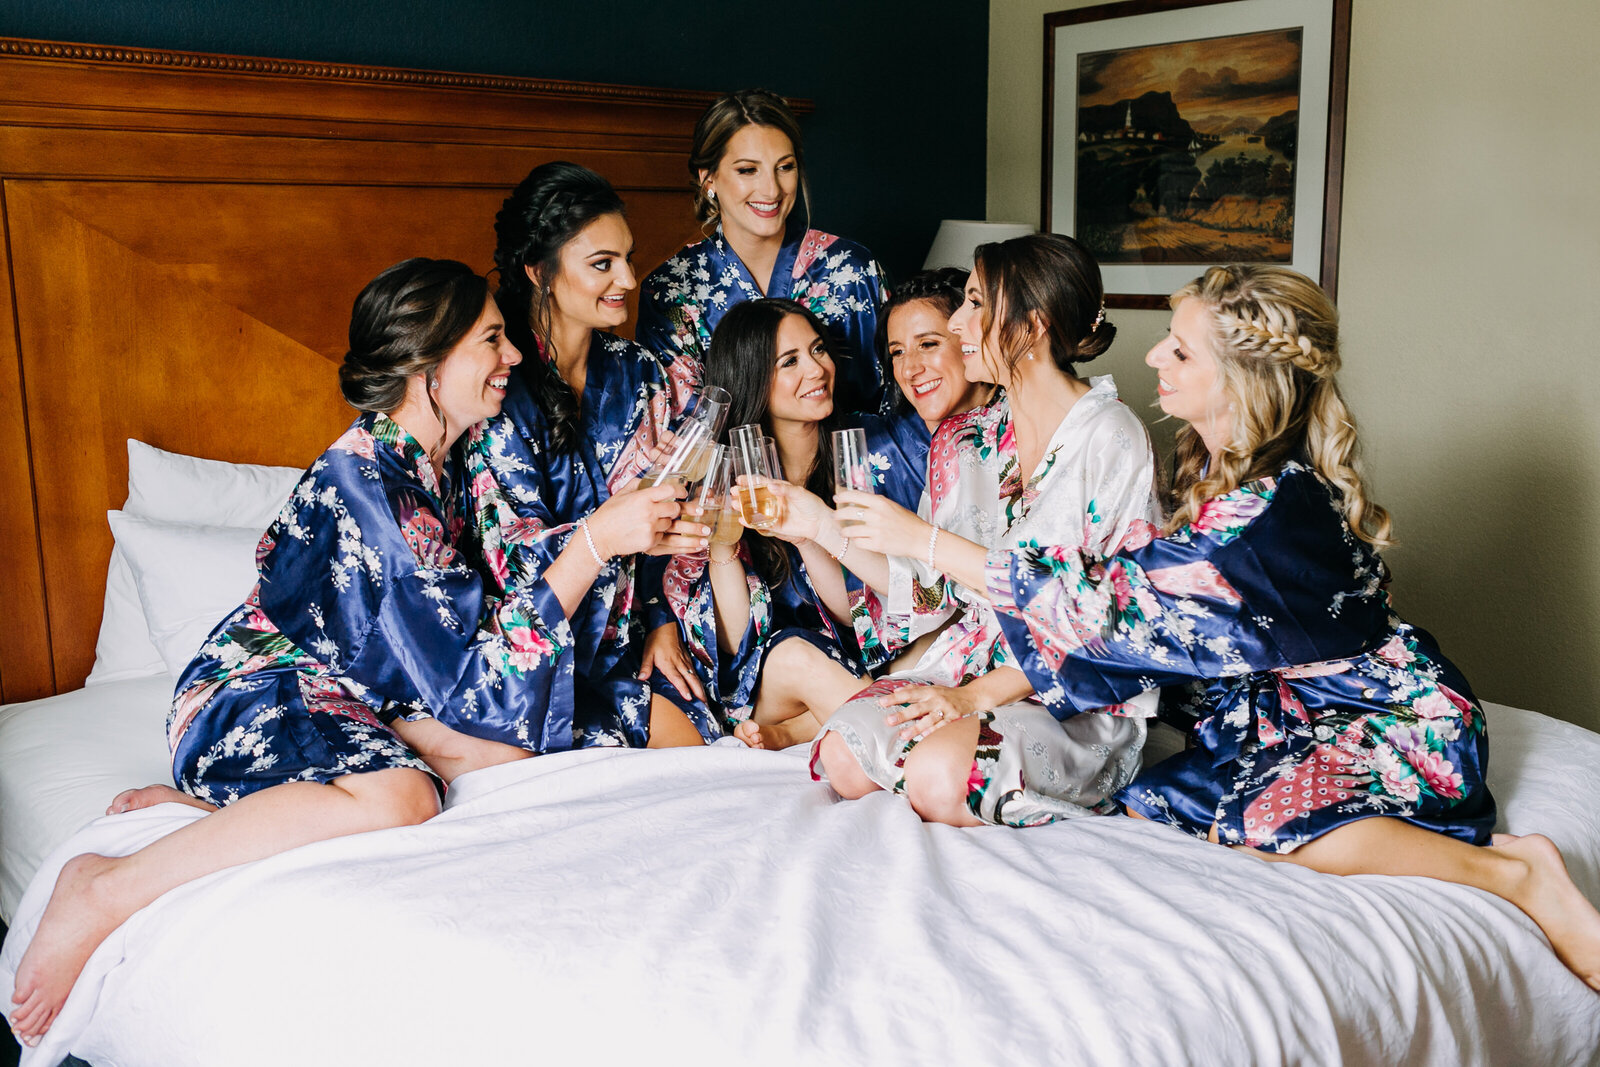 bride and bridesmaids cheering with champagne